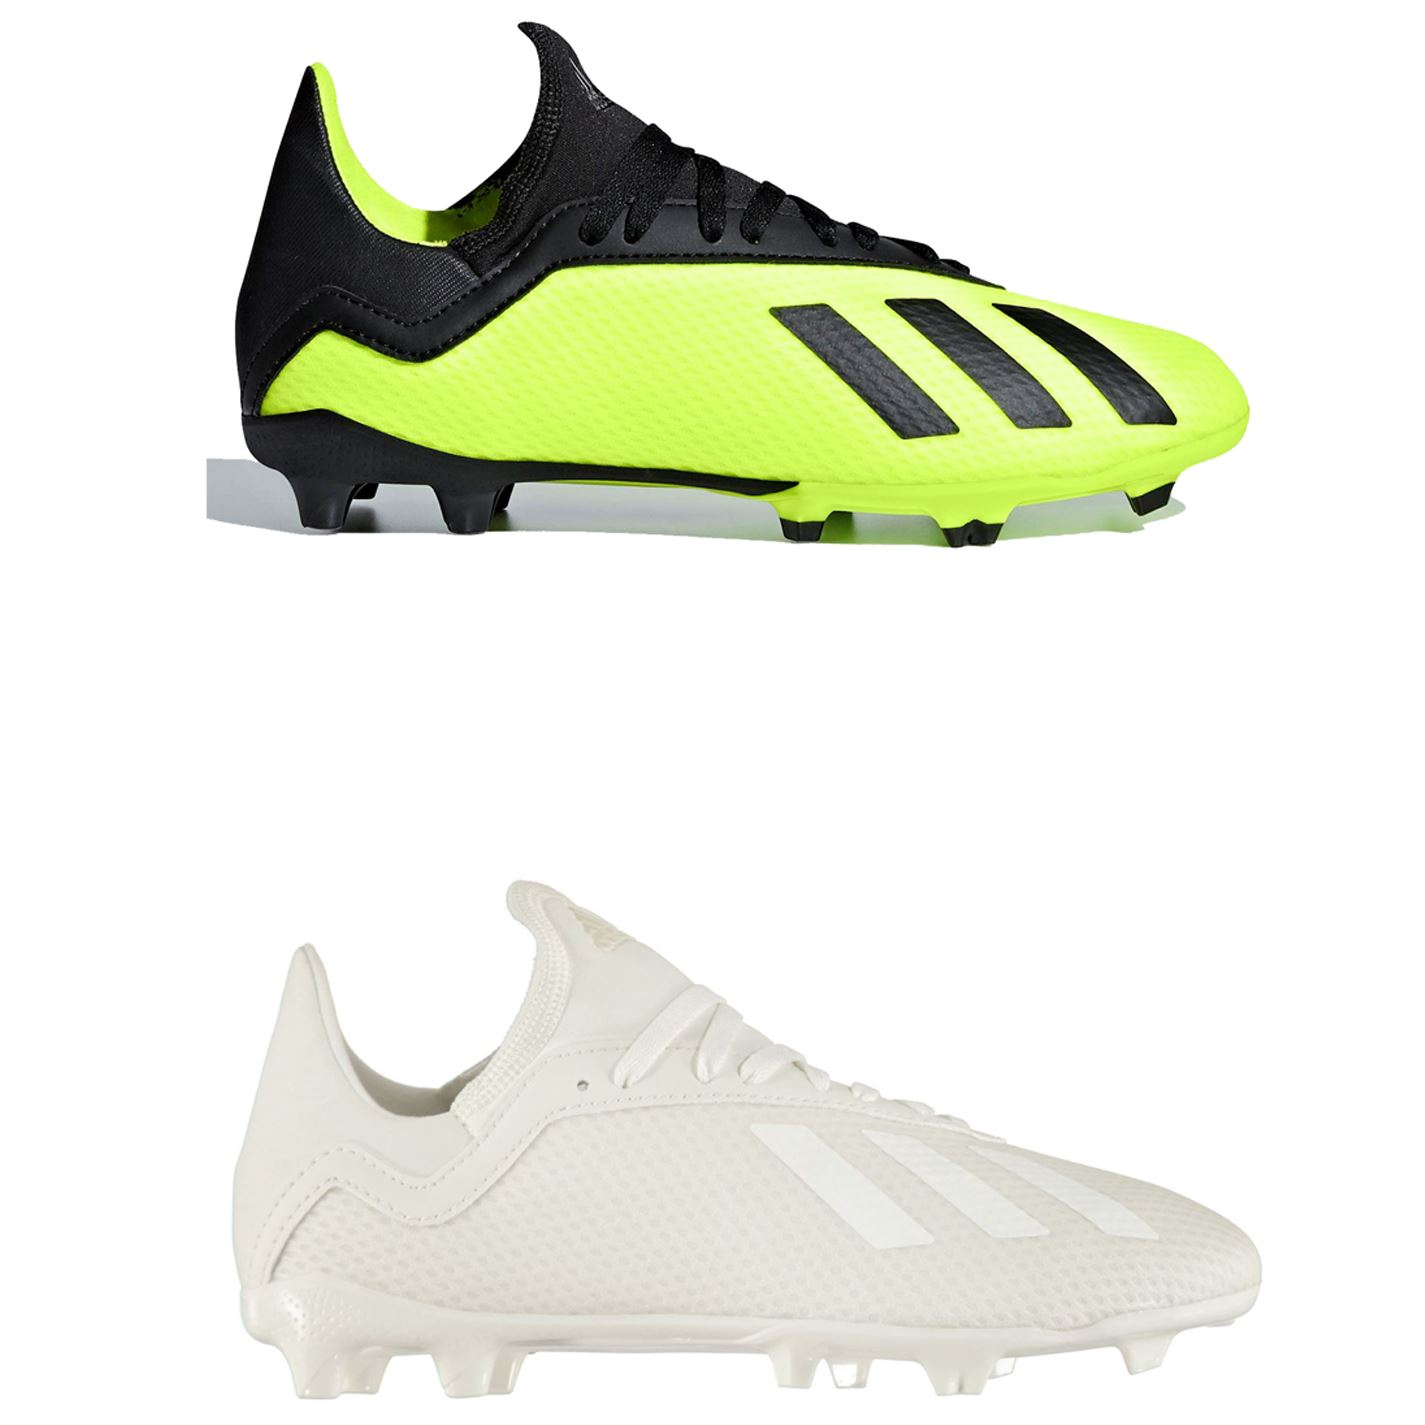 reputable site 8f51b 61556 Details about adidas X 18.3 FG Firm Ground Football Boots Childs Soccer  Shoes Cleats